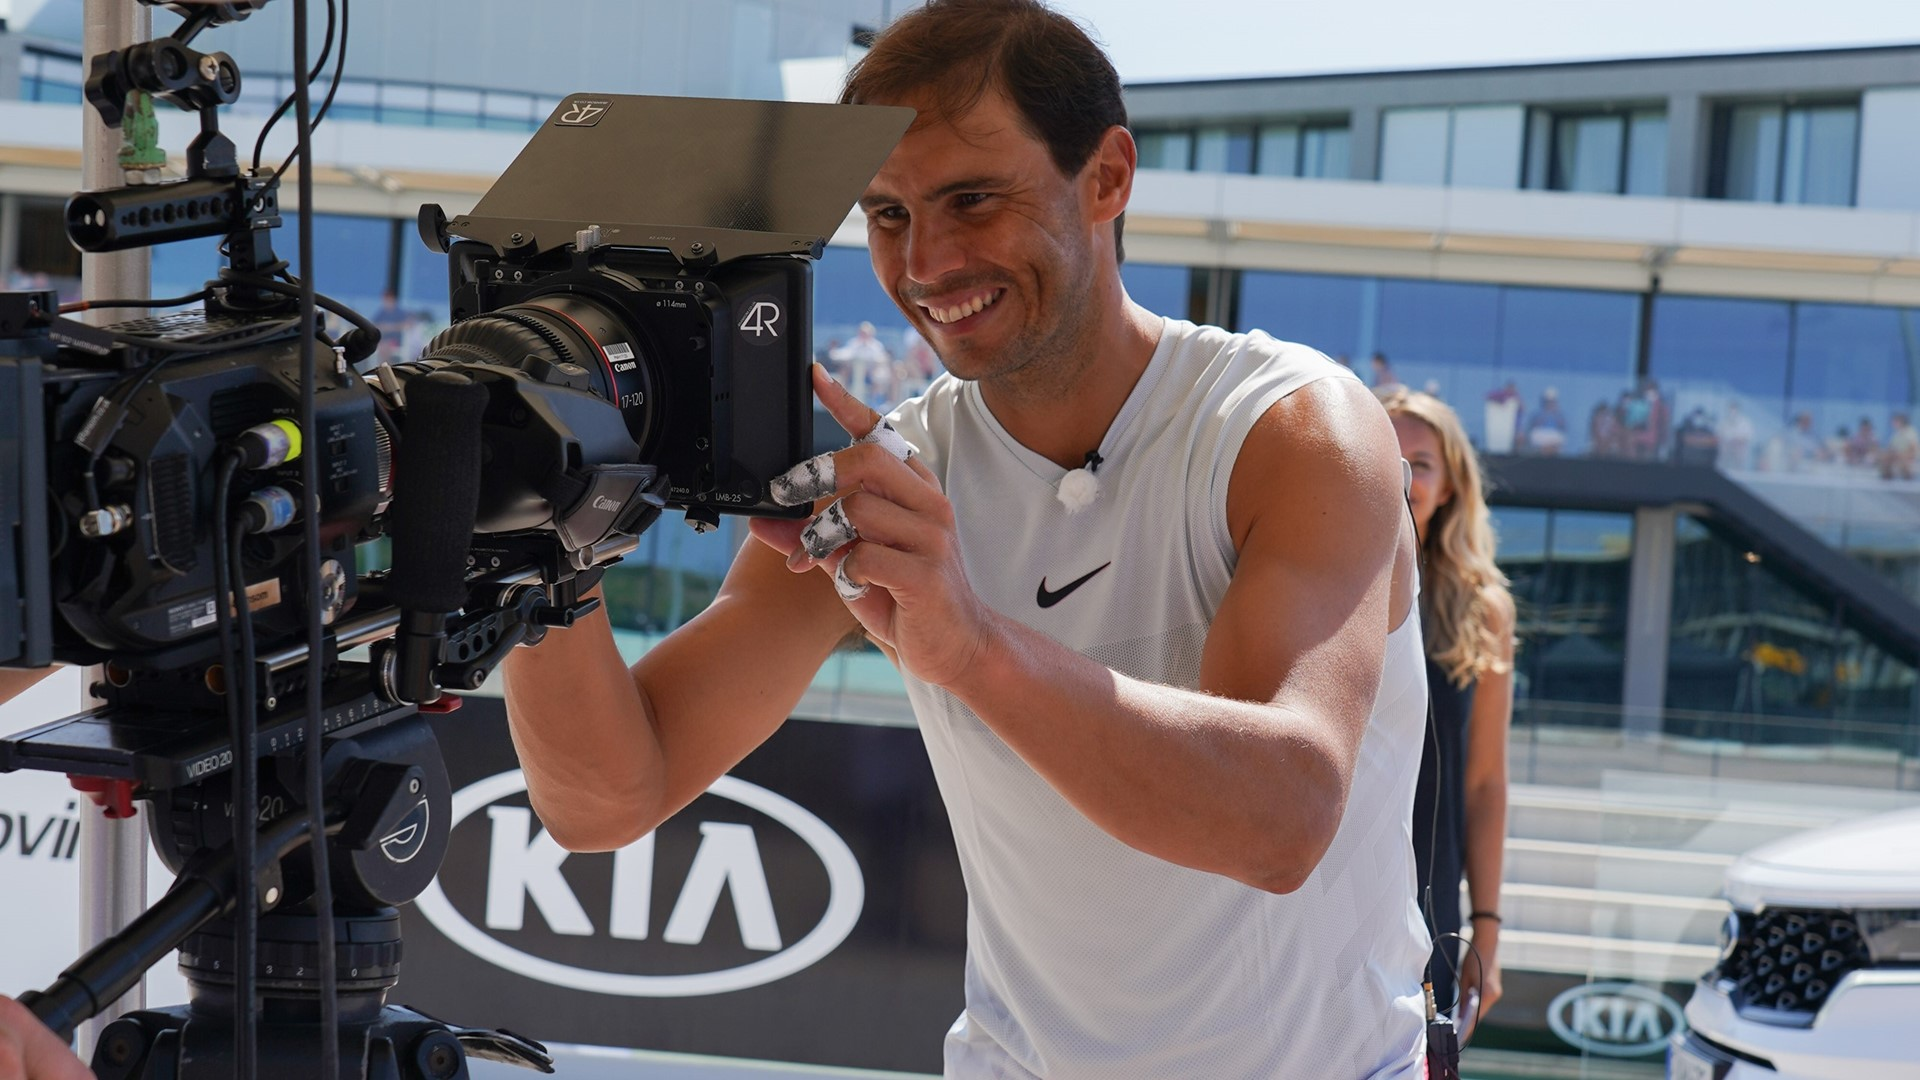 Rafael Nadal signs the camera lens during a virtual signing ceremony with Kia